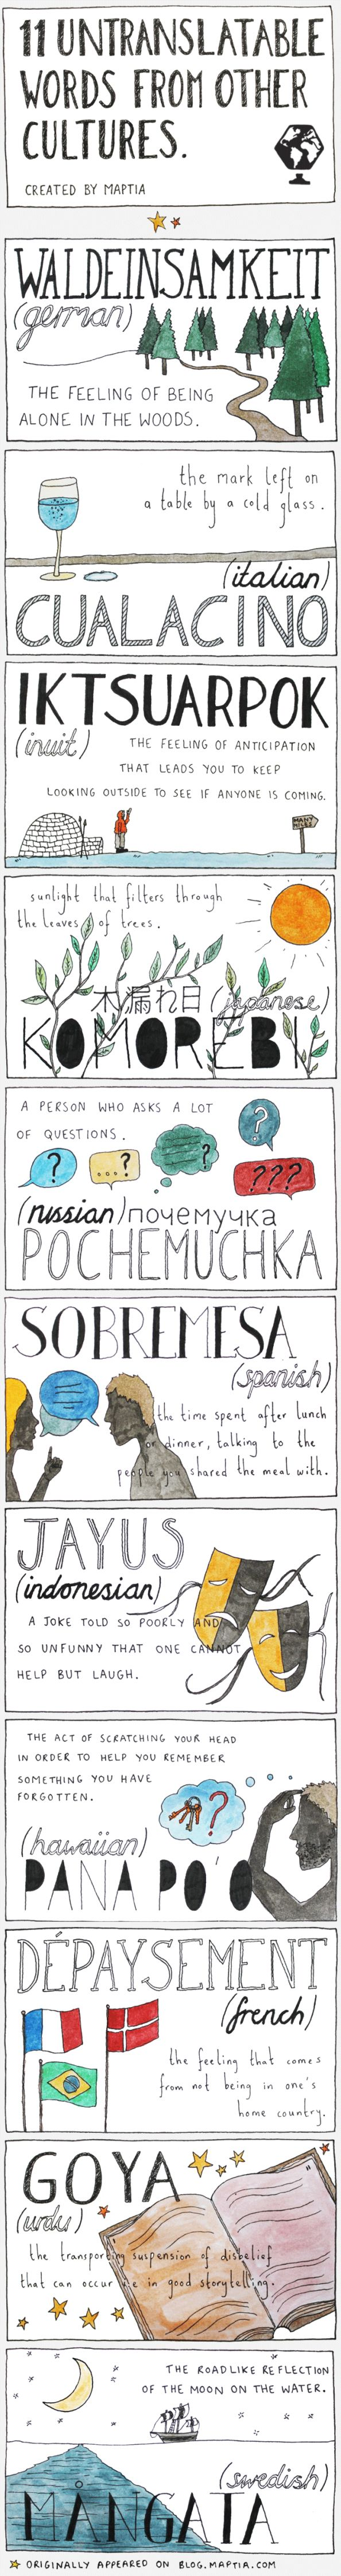 11 Untranslatable Words From Other Cultures Infographic by Ella Frances Sanders,  blog.maptia.com via visual.ly #Infographic #Language